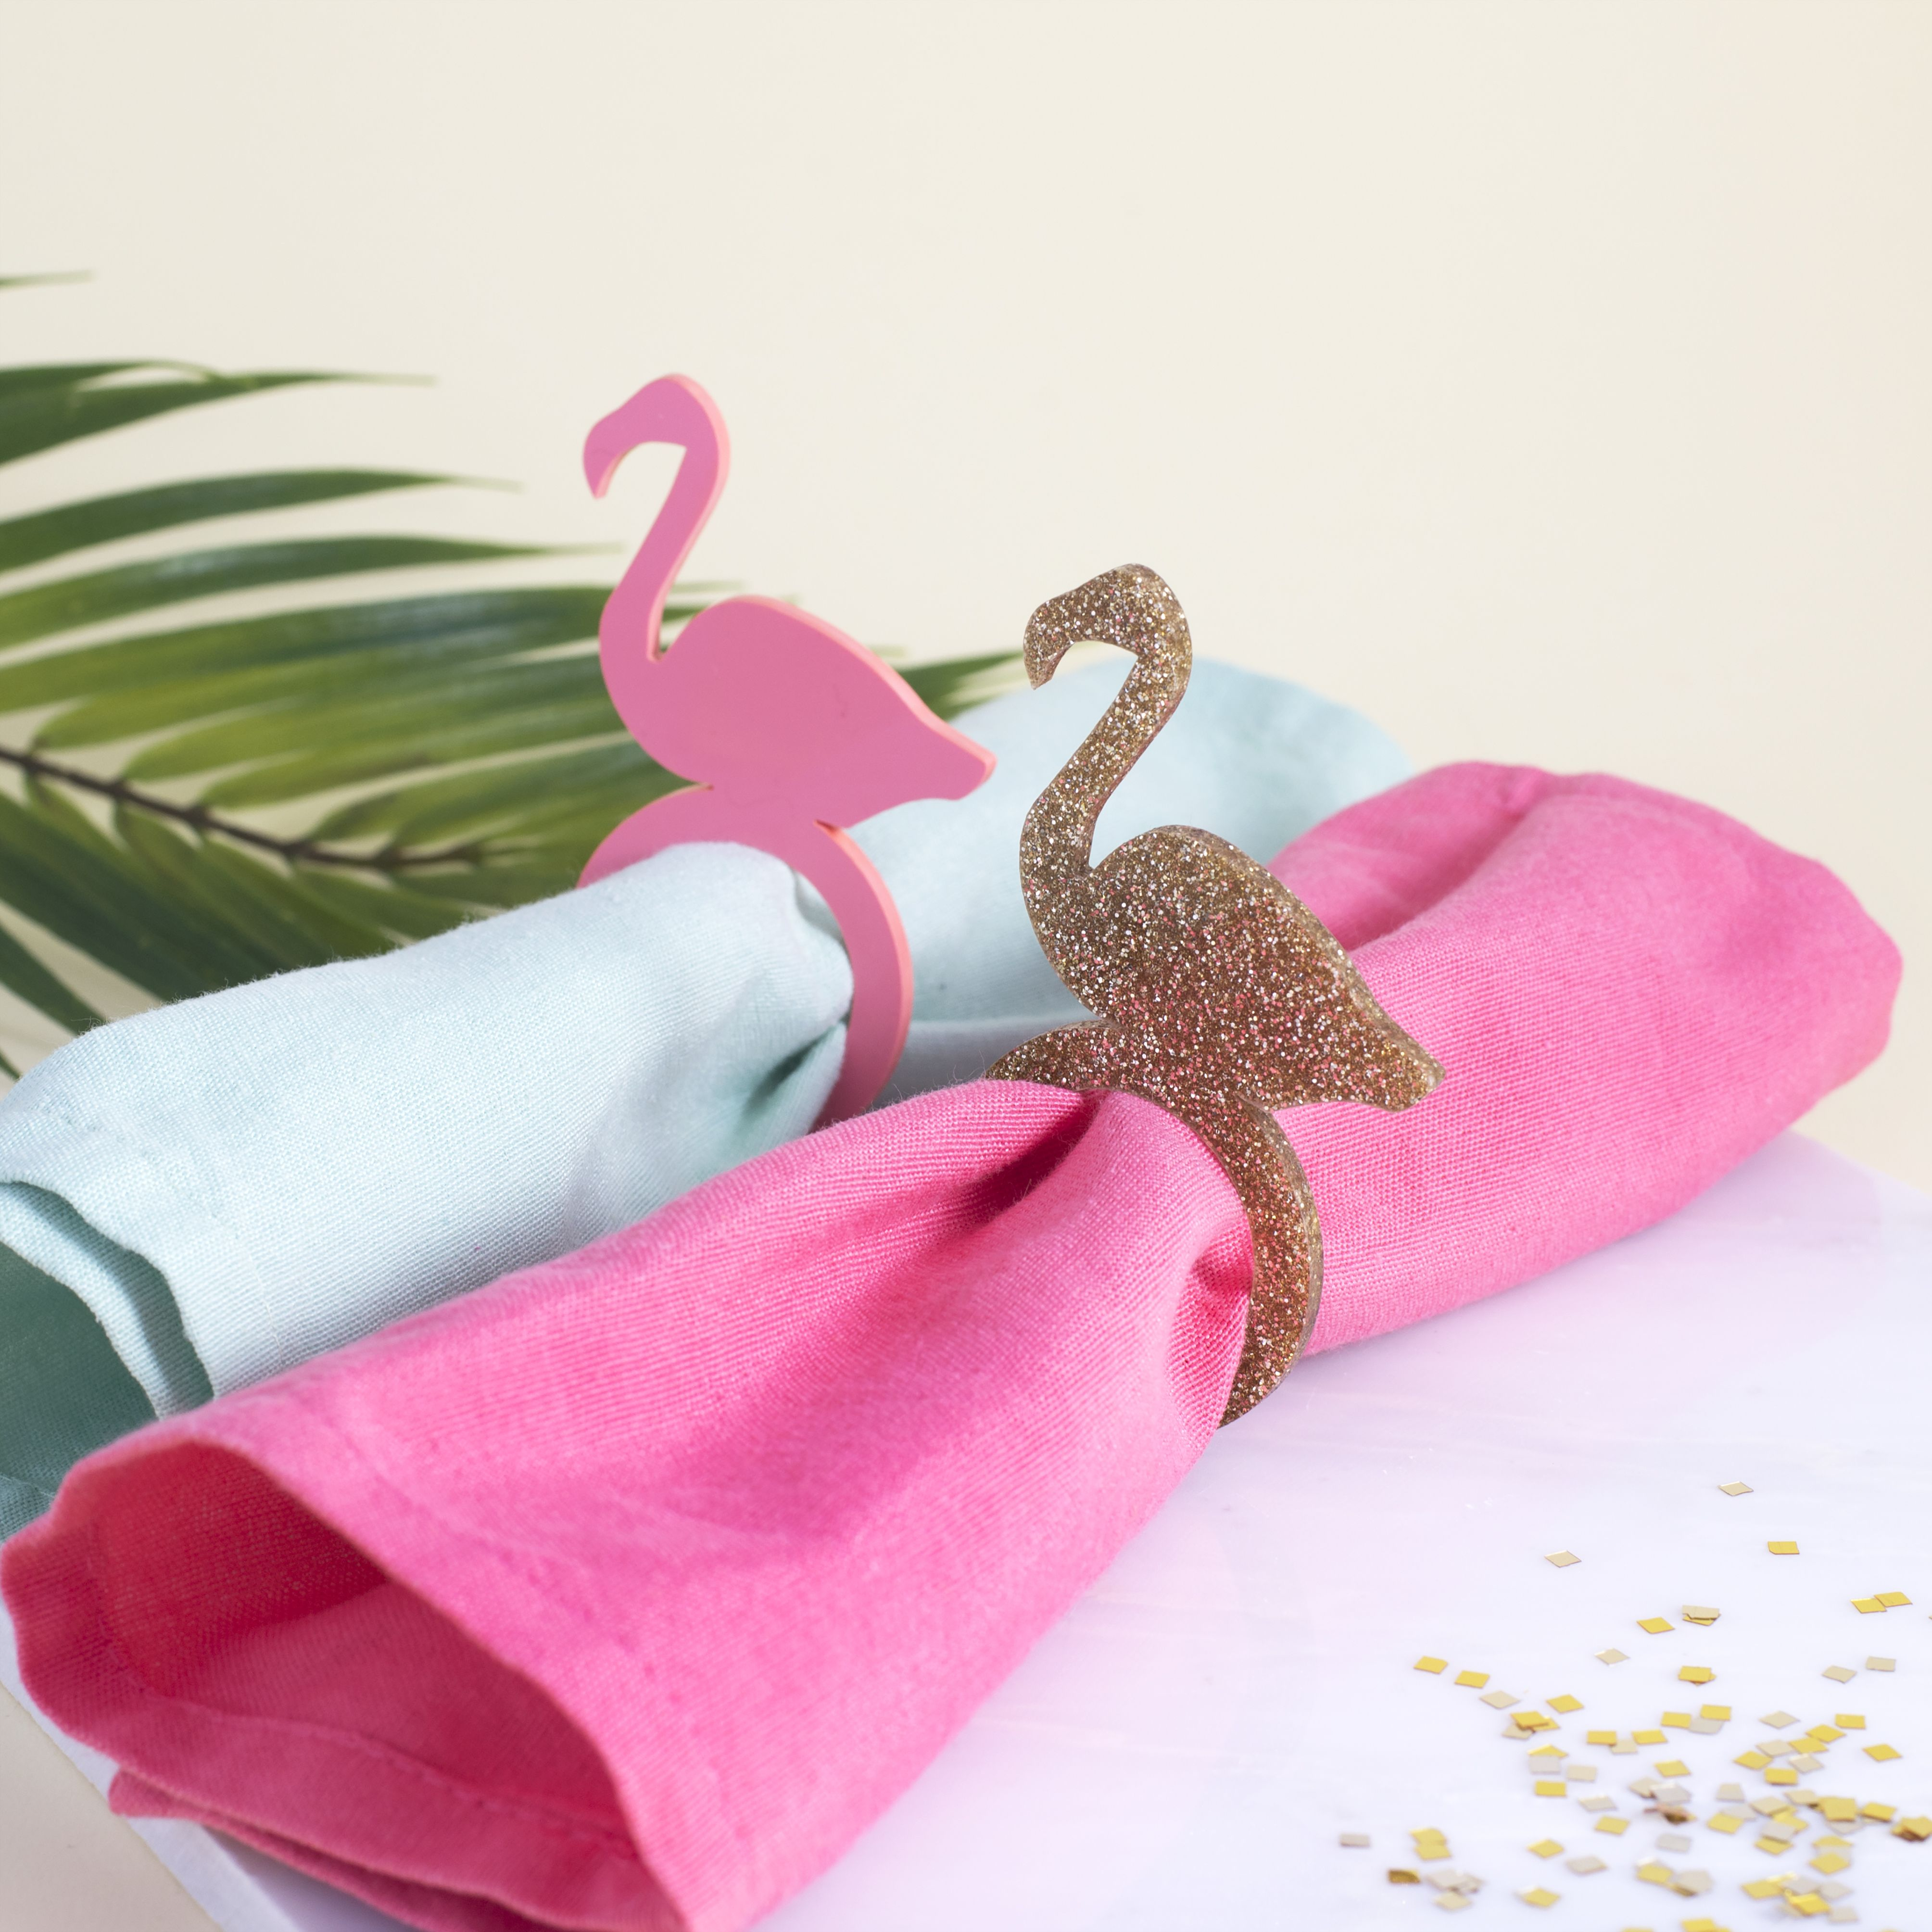 Flamingo Napkin Rings in Pink or Gold - Party Napkin Rings, Wedding ...